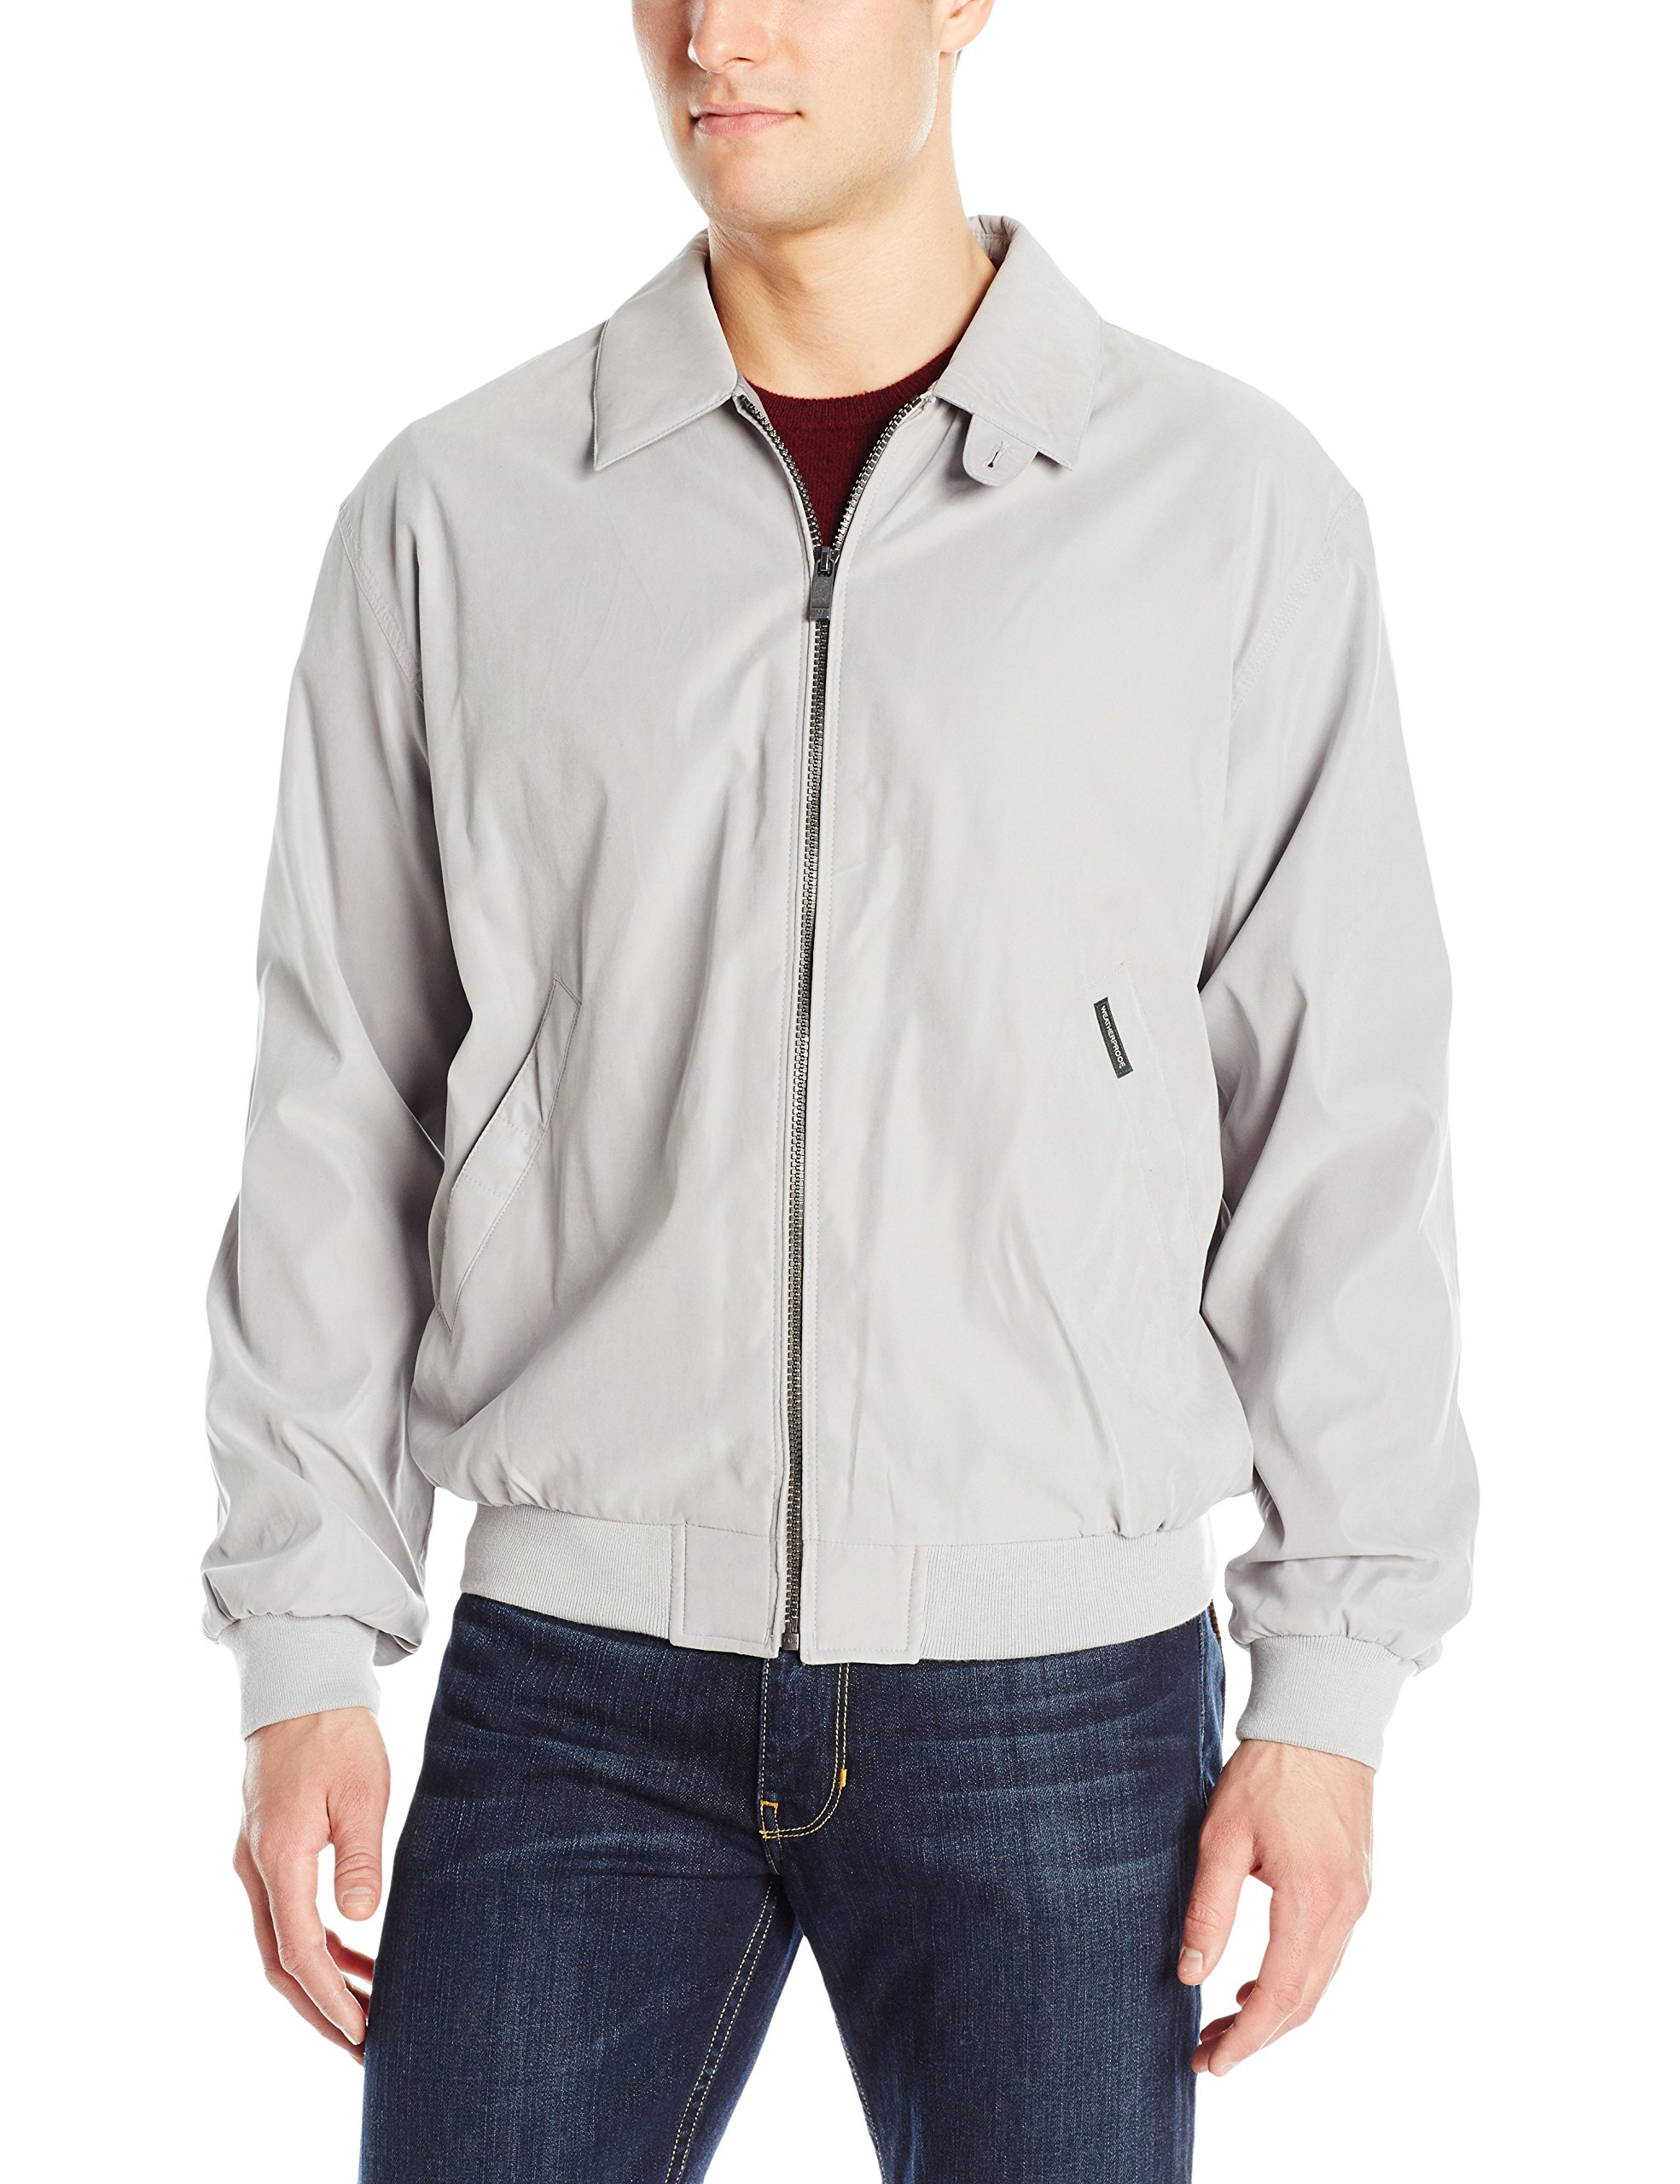 Weatherproof Garment Co. Men's Classic Golf Jacket, Fog, XX-Large by Weatherproof Garment Co.